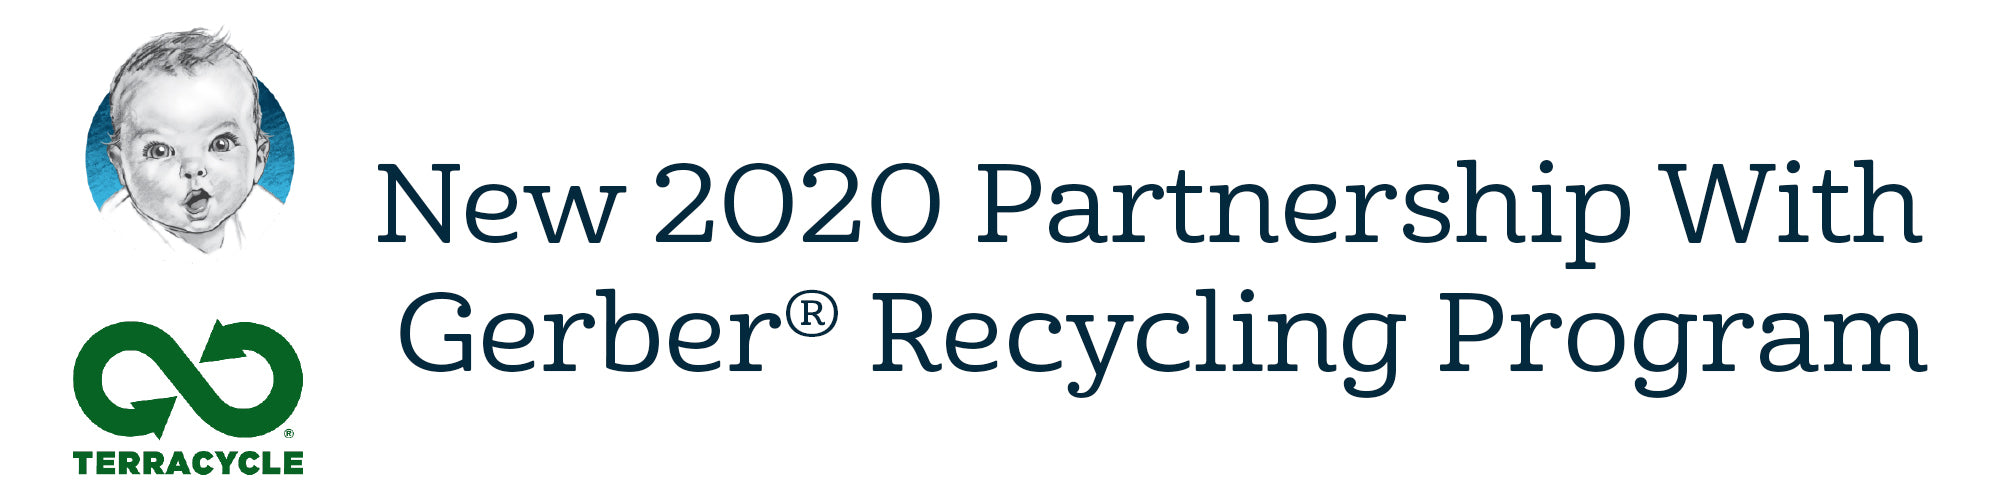 Gerber Childrenswear and Terracycle Sustainability and Recycling Program